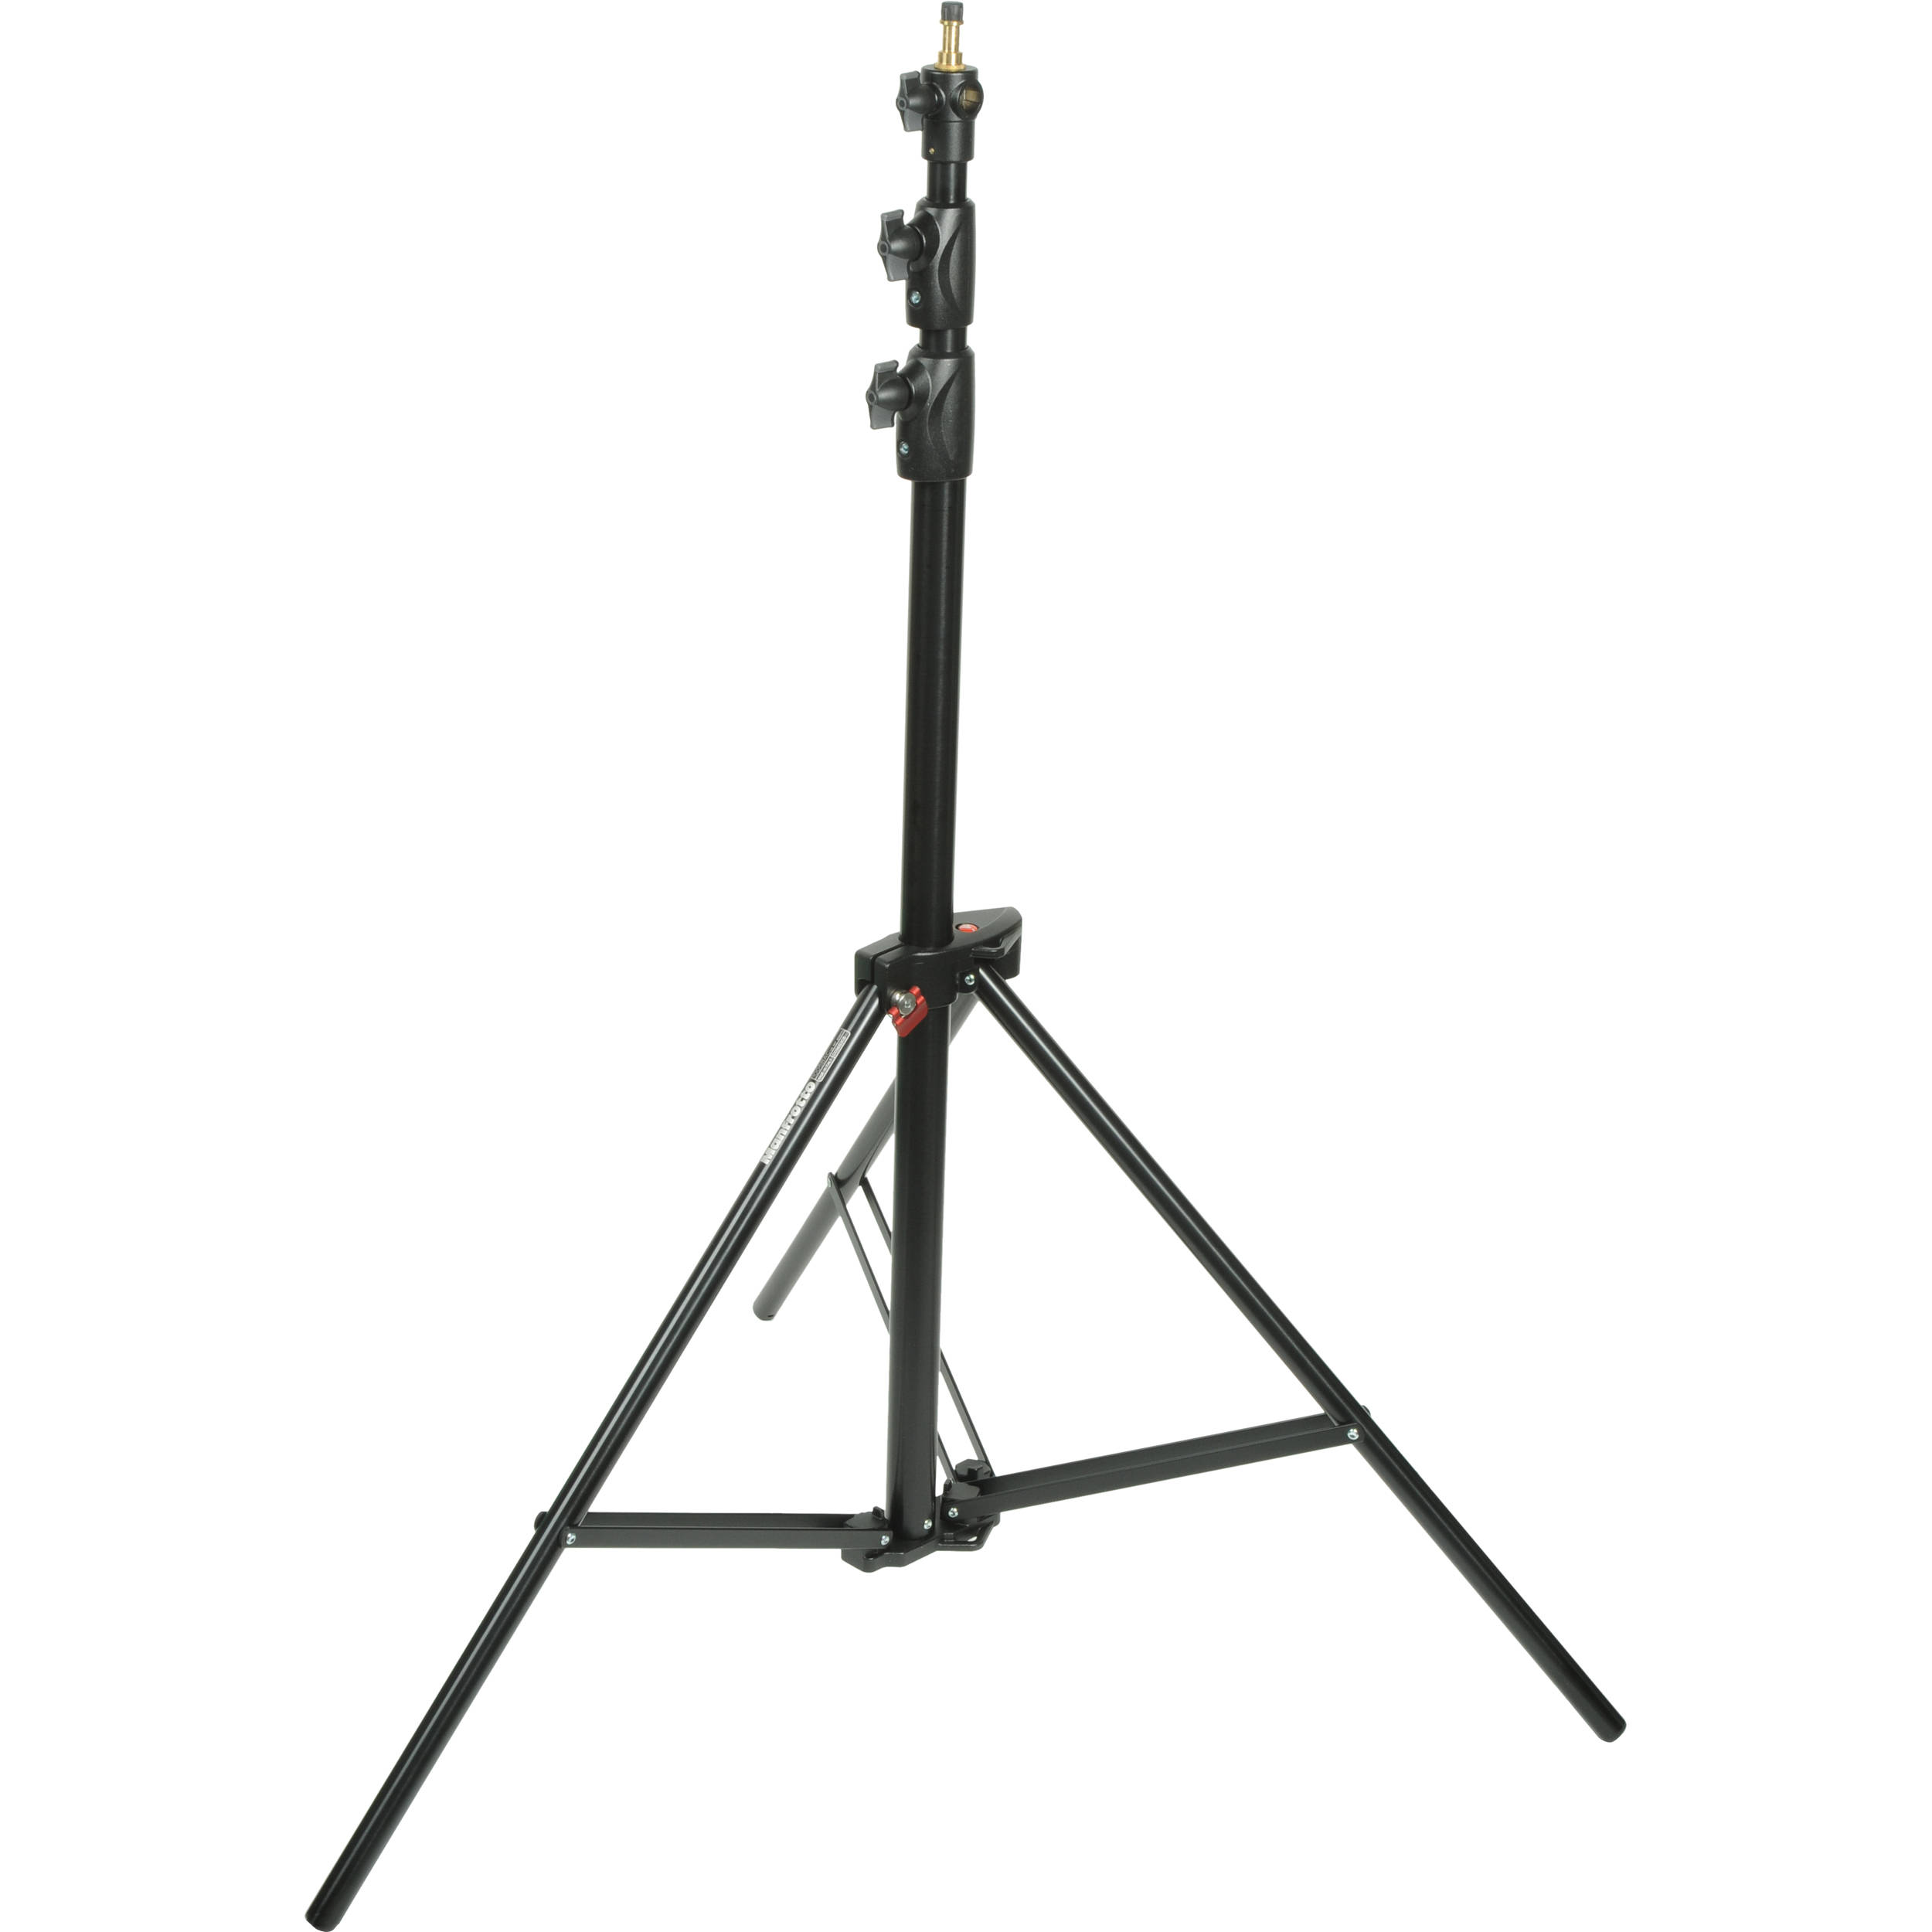 Manfrotto Alu Ranker Air-Cushioned Light Stand 1005BAC B&H